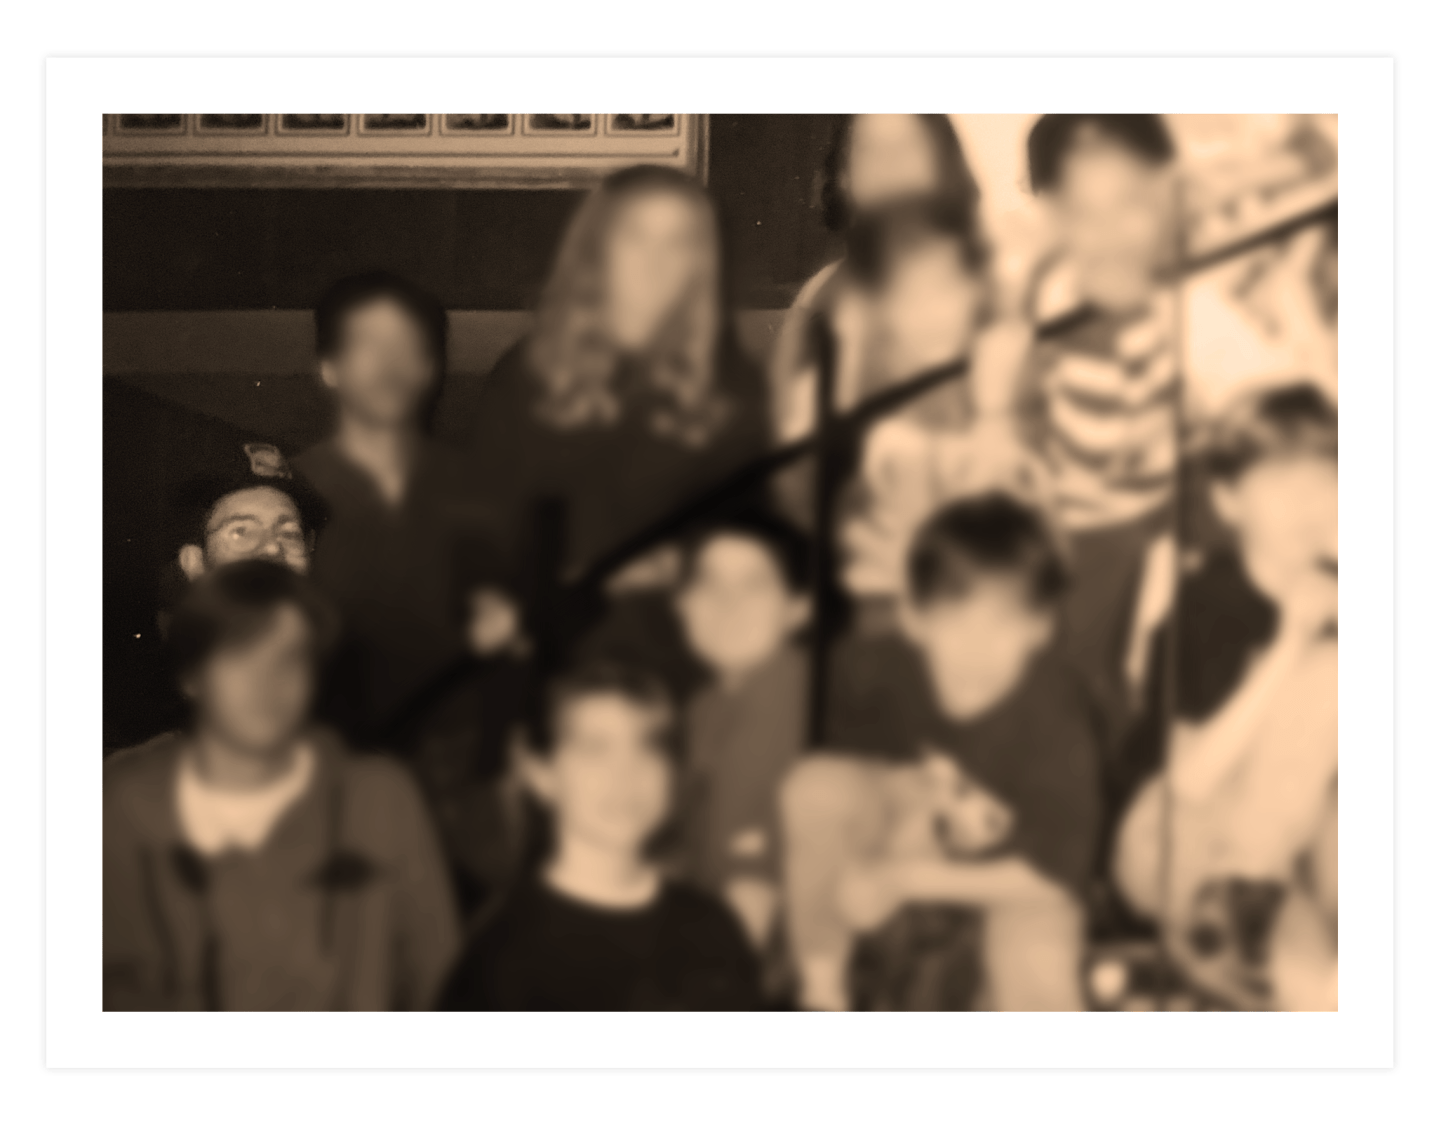 In many group photos taken through the years, David Menna appears in the back, all but obscured by one of the youths.